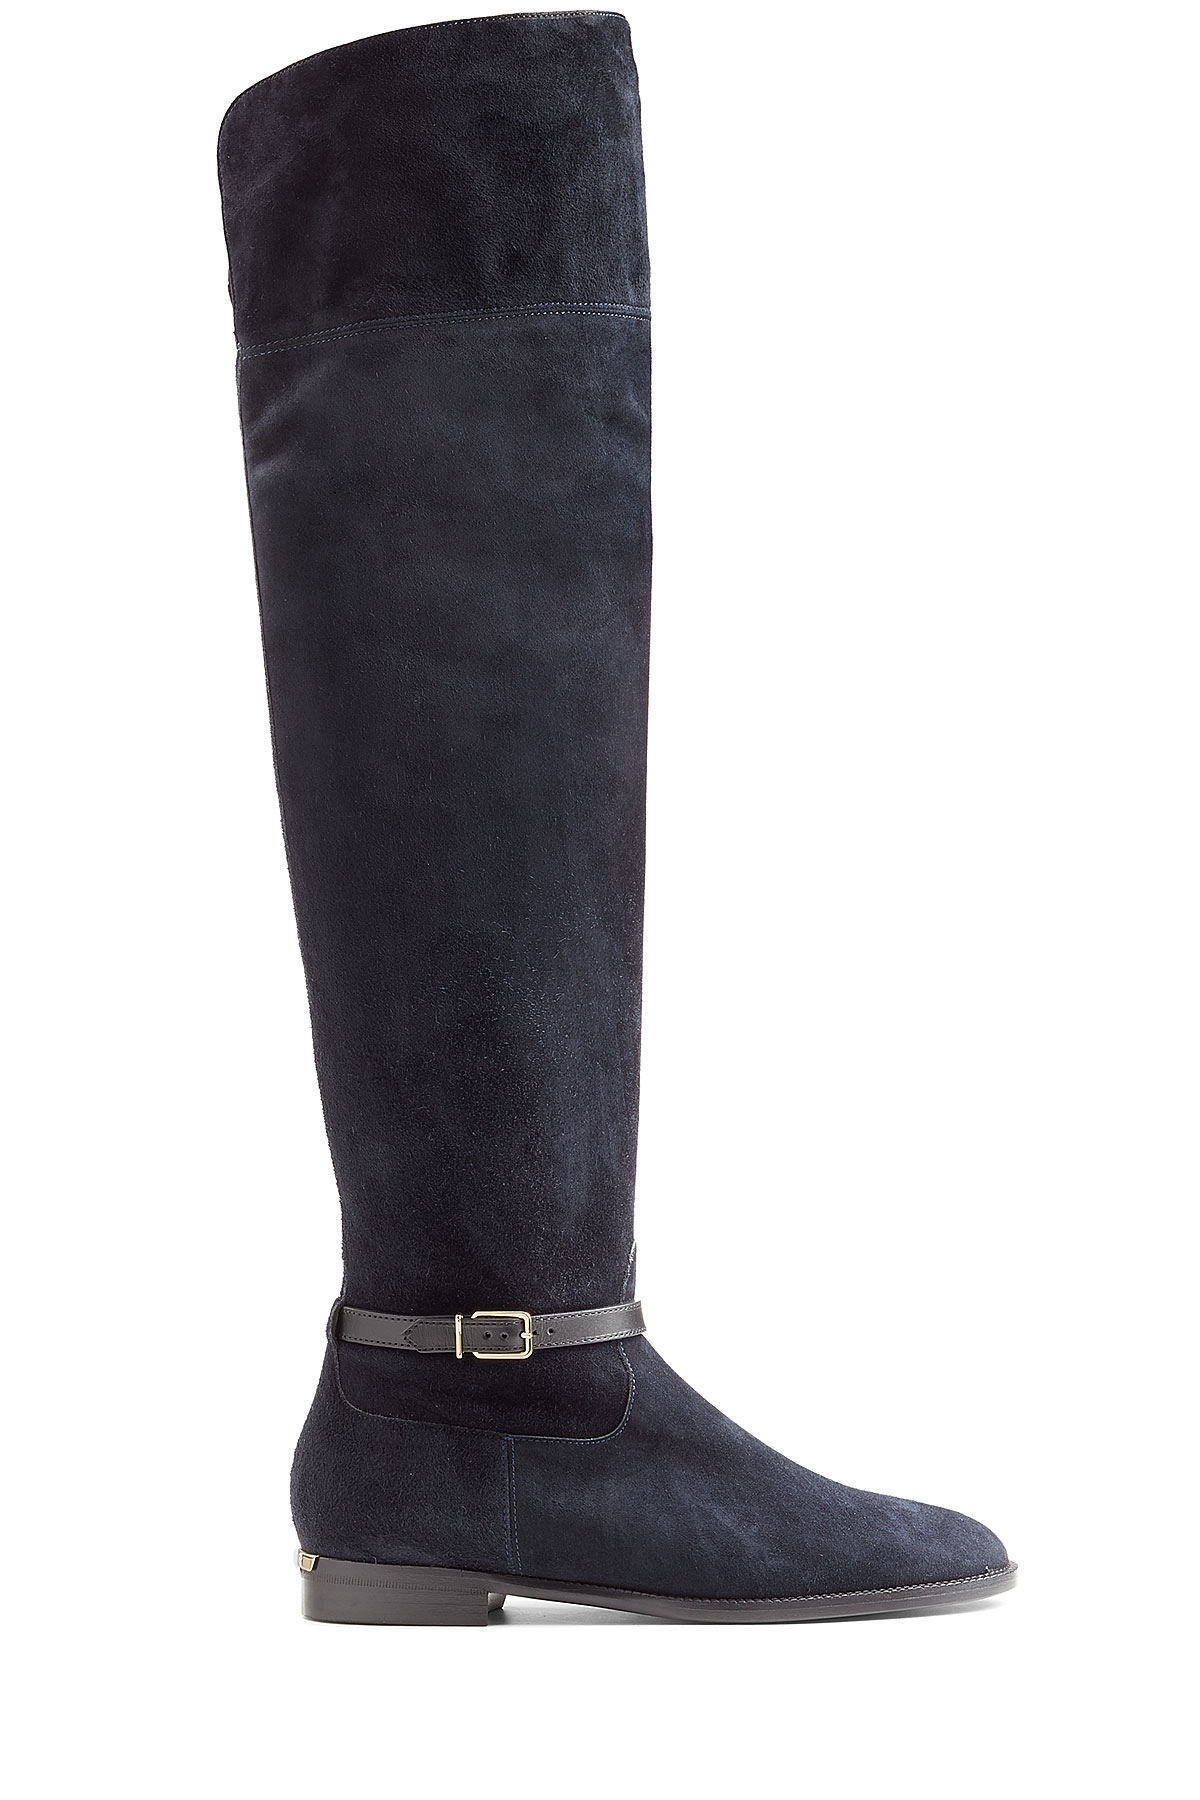 burberry suede the knee boots in black lyst